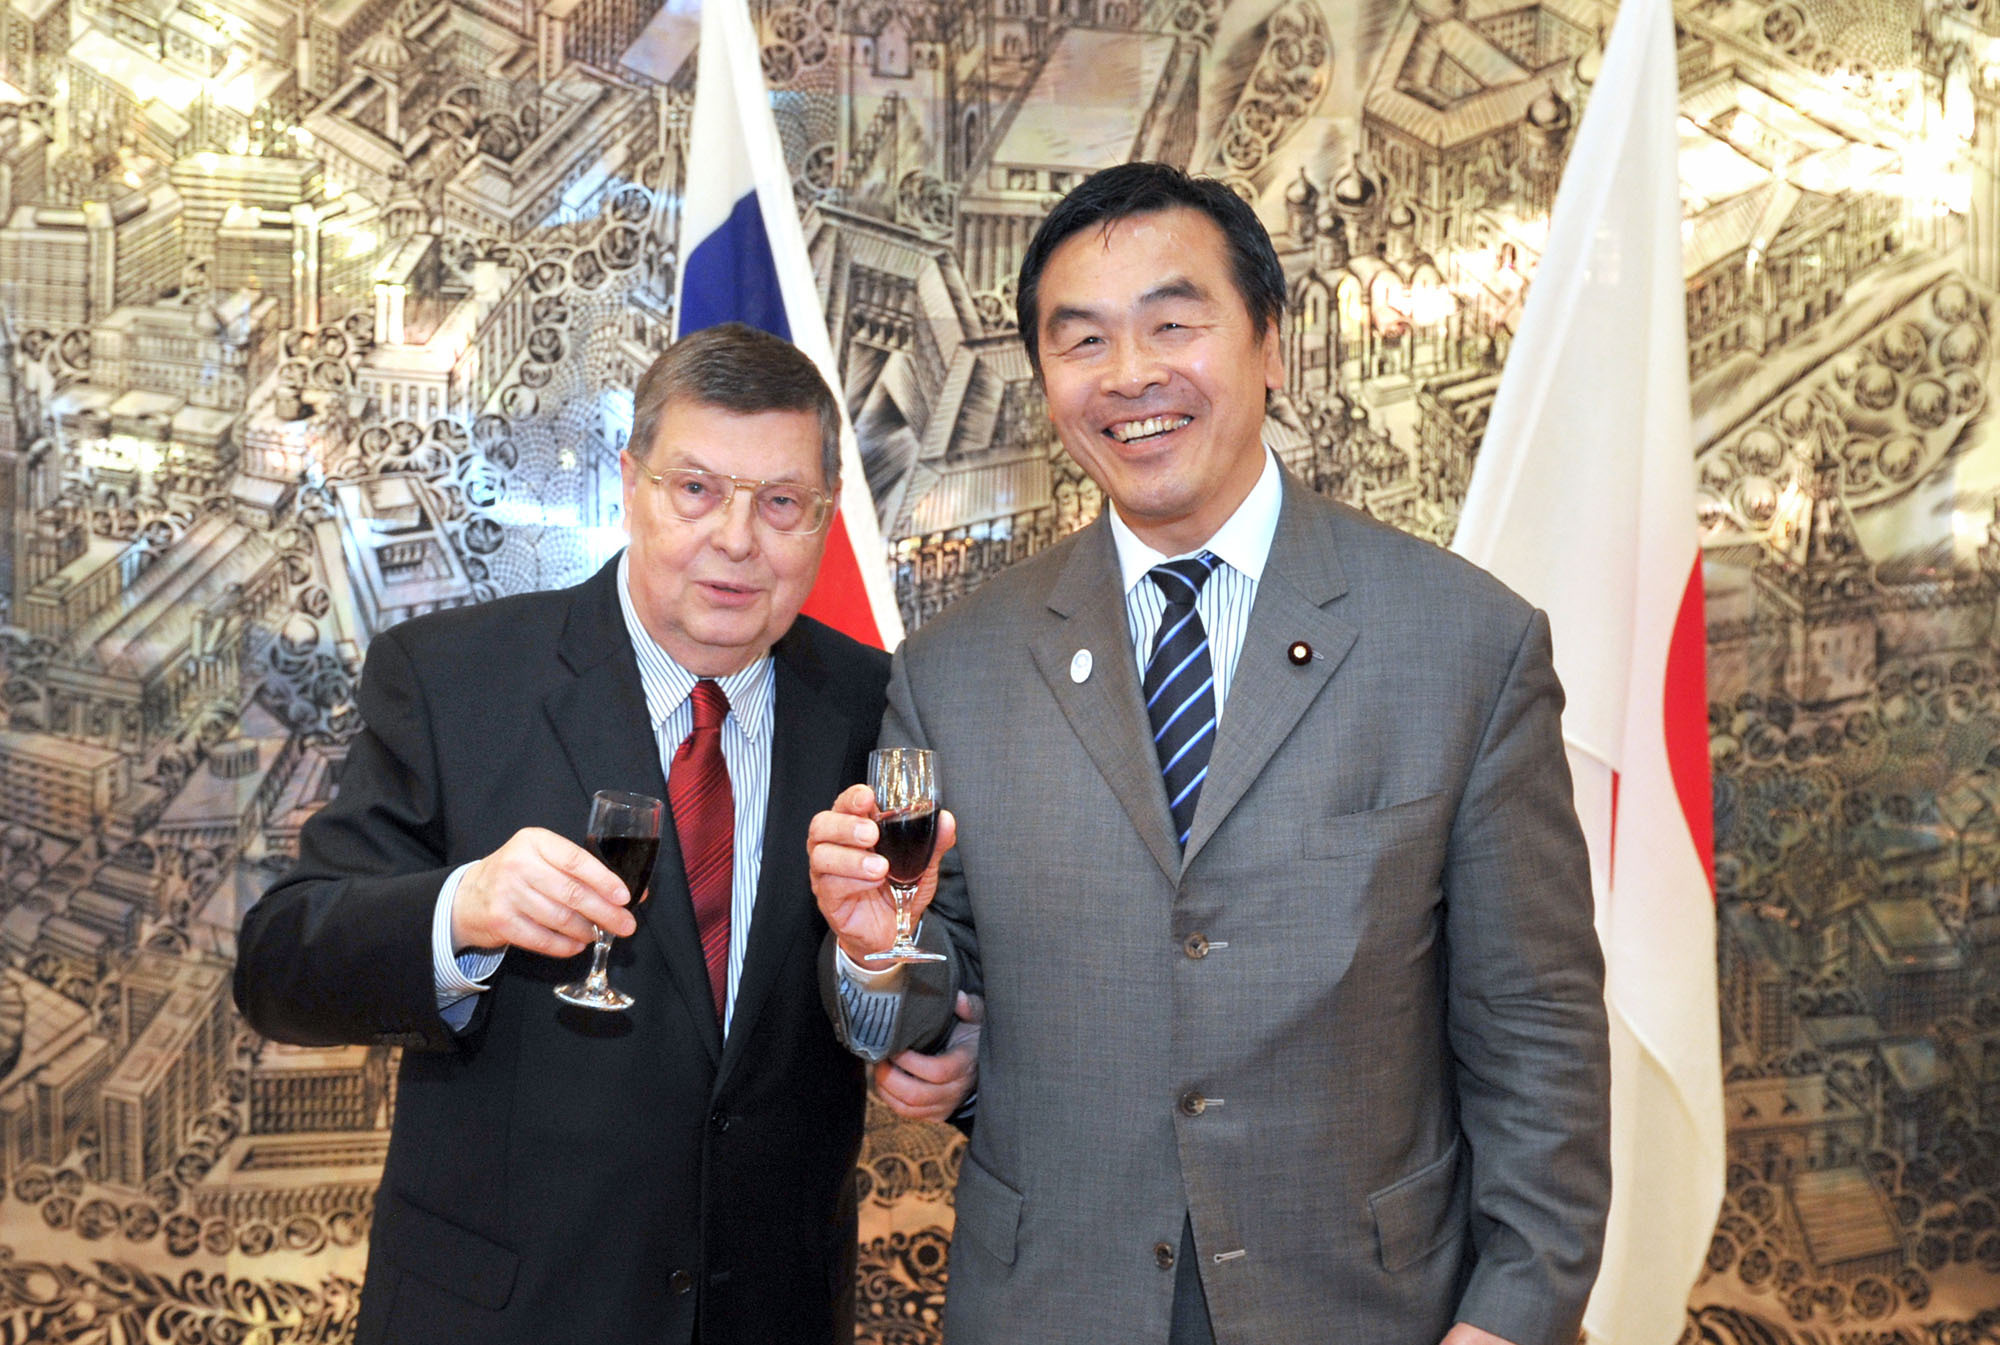 Russian Ambassador Evgeny Afanasiev (left) poses with Minister of Education, Culture, Sports, Science and Technology Hiroshi Hase at a reception celebrating the Day of Russia at the embassy in Tokyo on June 10. | YOSHIAKI MIURA